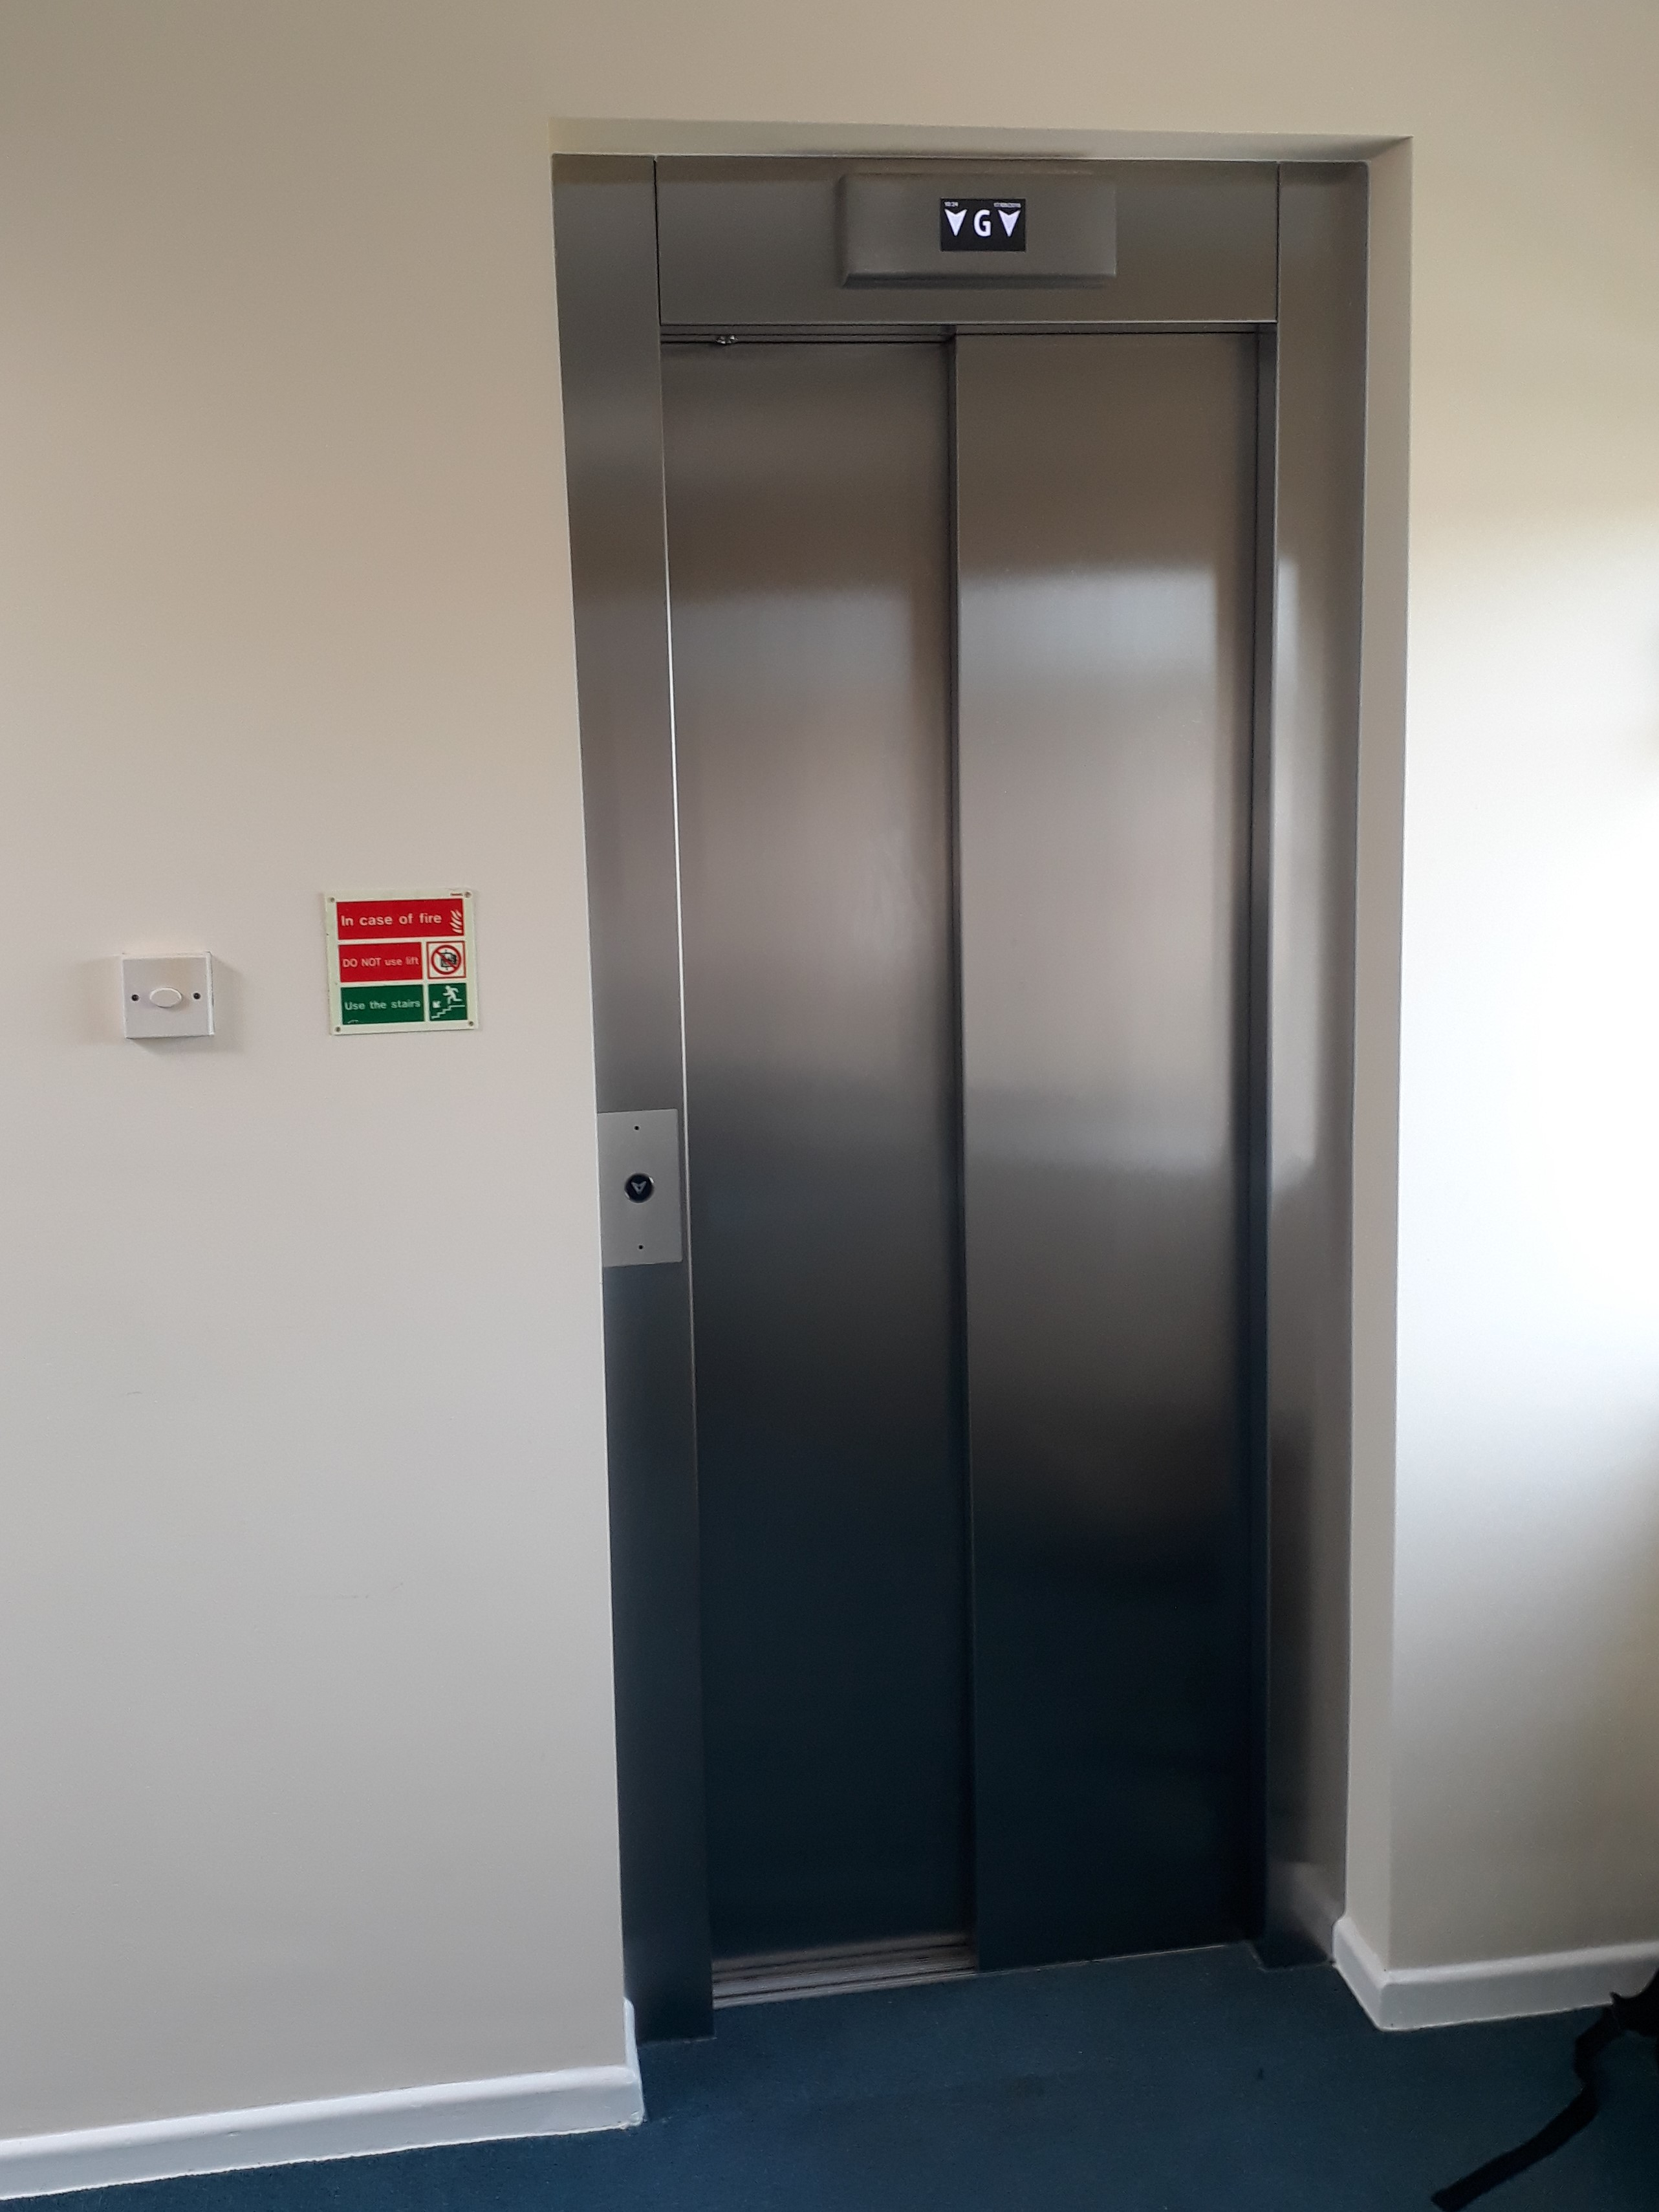 Lift Entrance after refurbishment